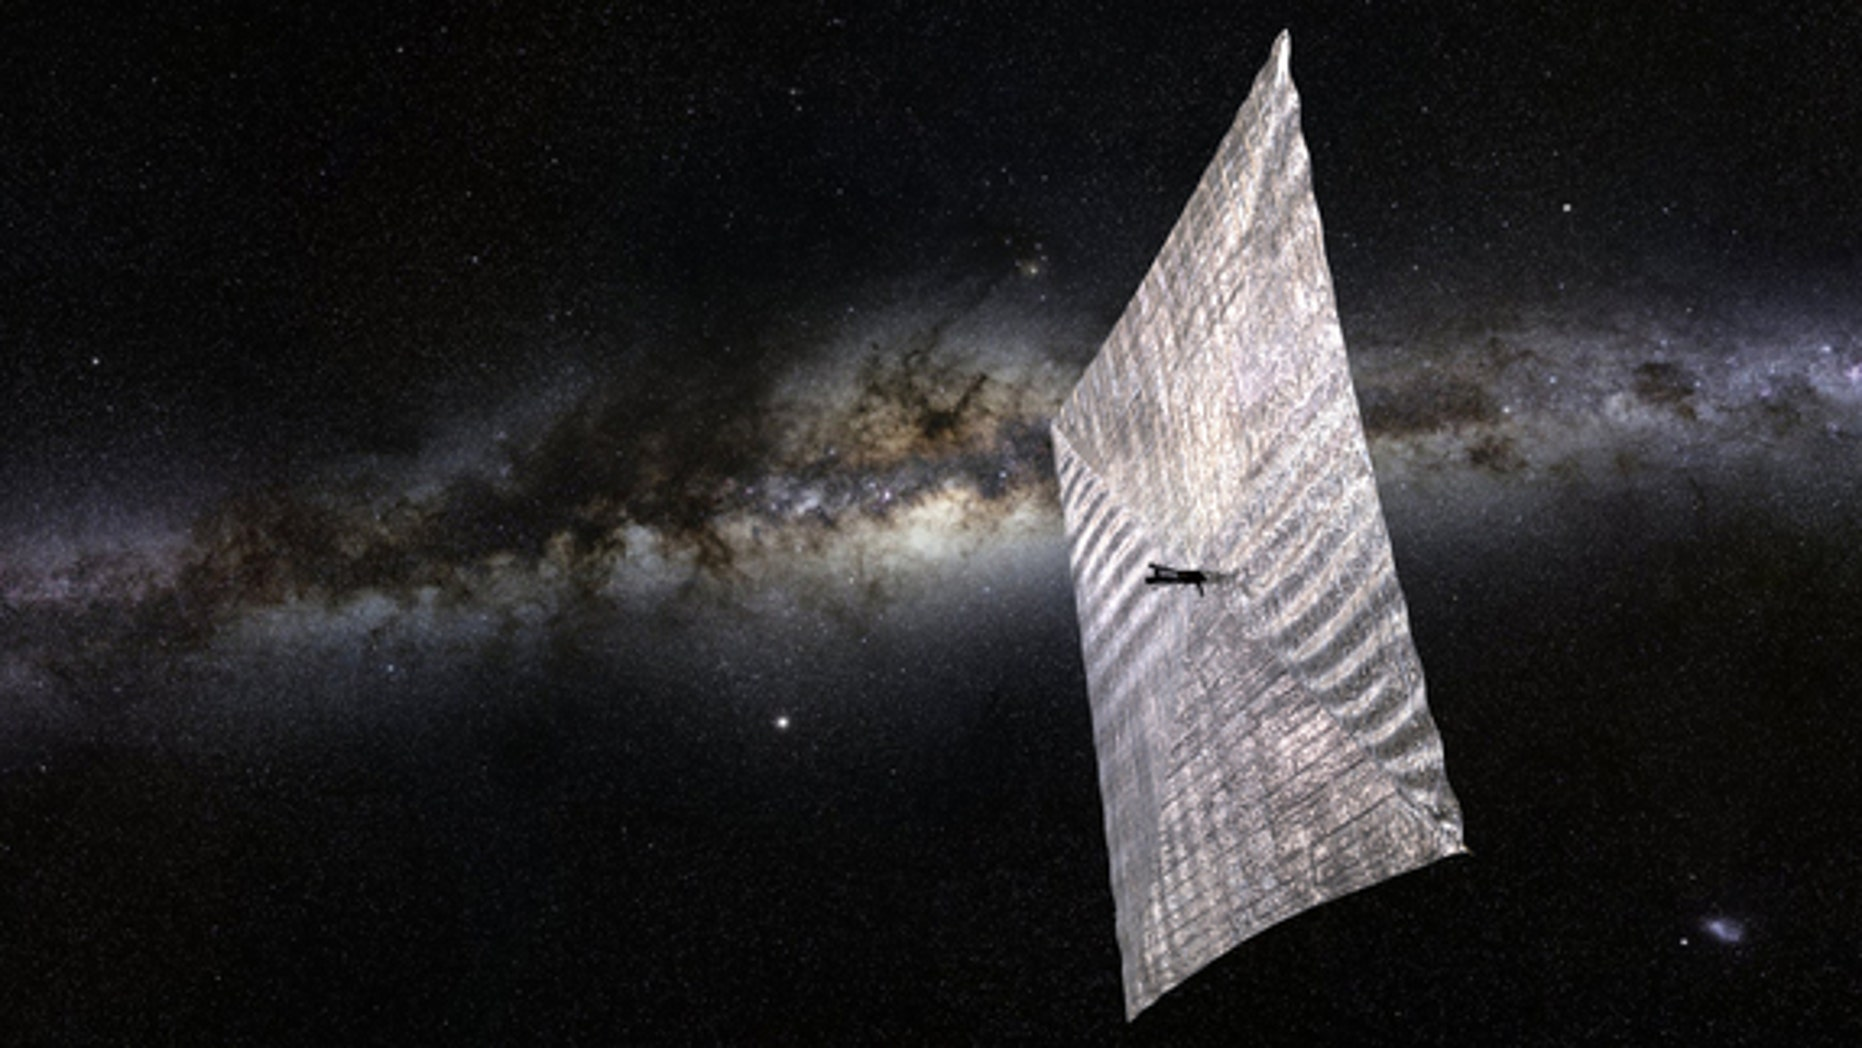 Artist's concept of The Planetary Society's LightSail cubesat in space.